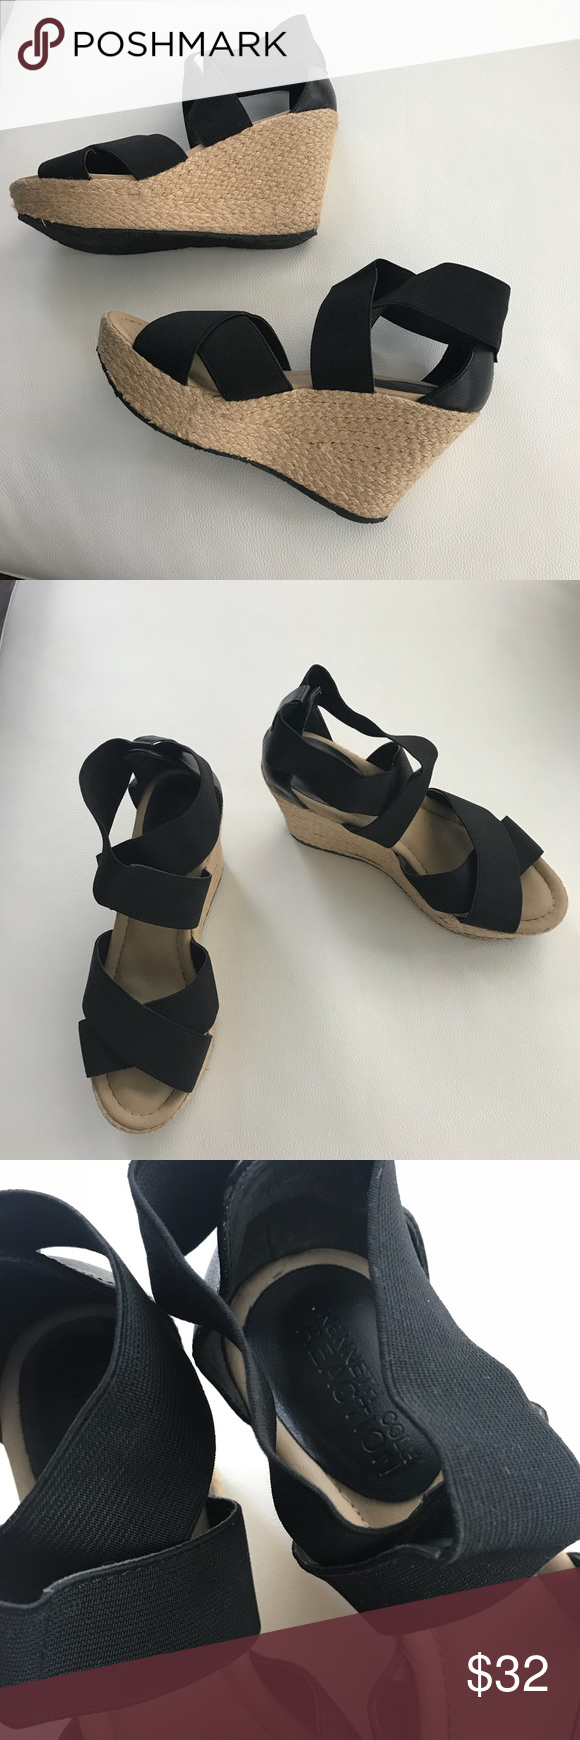 Kenneth Cole Reaction Wedge Black Sandal size 6